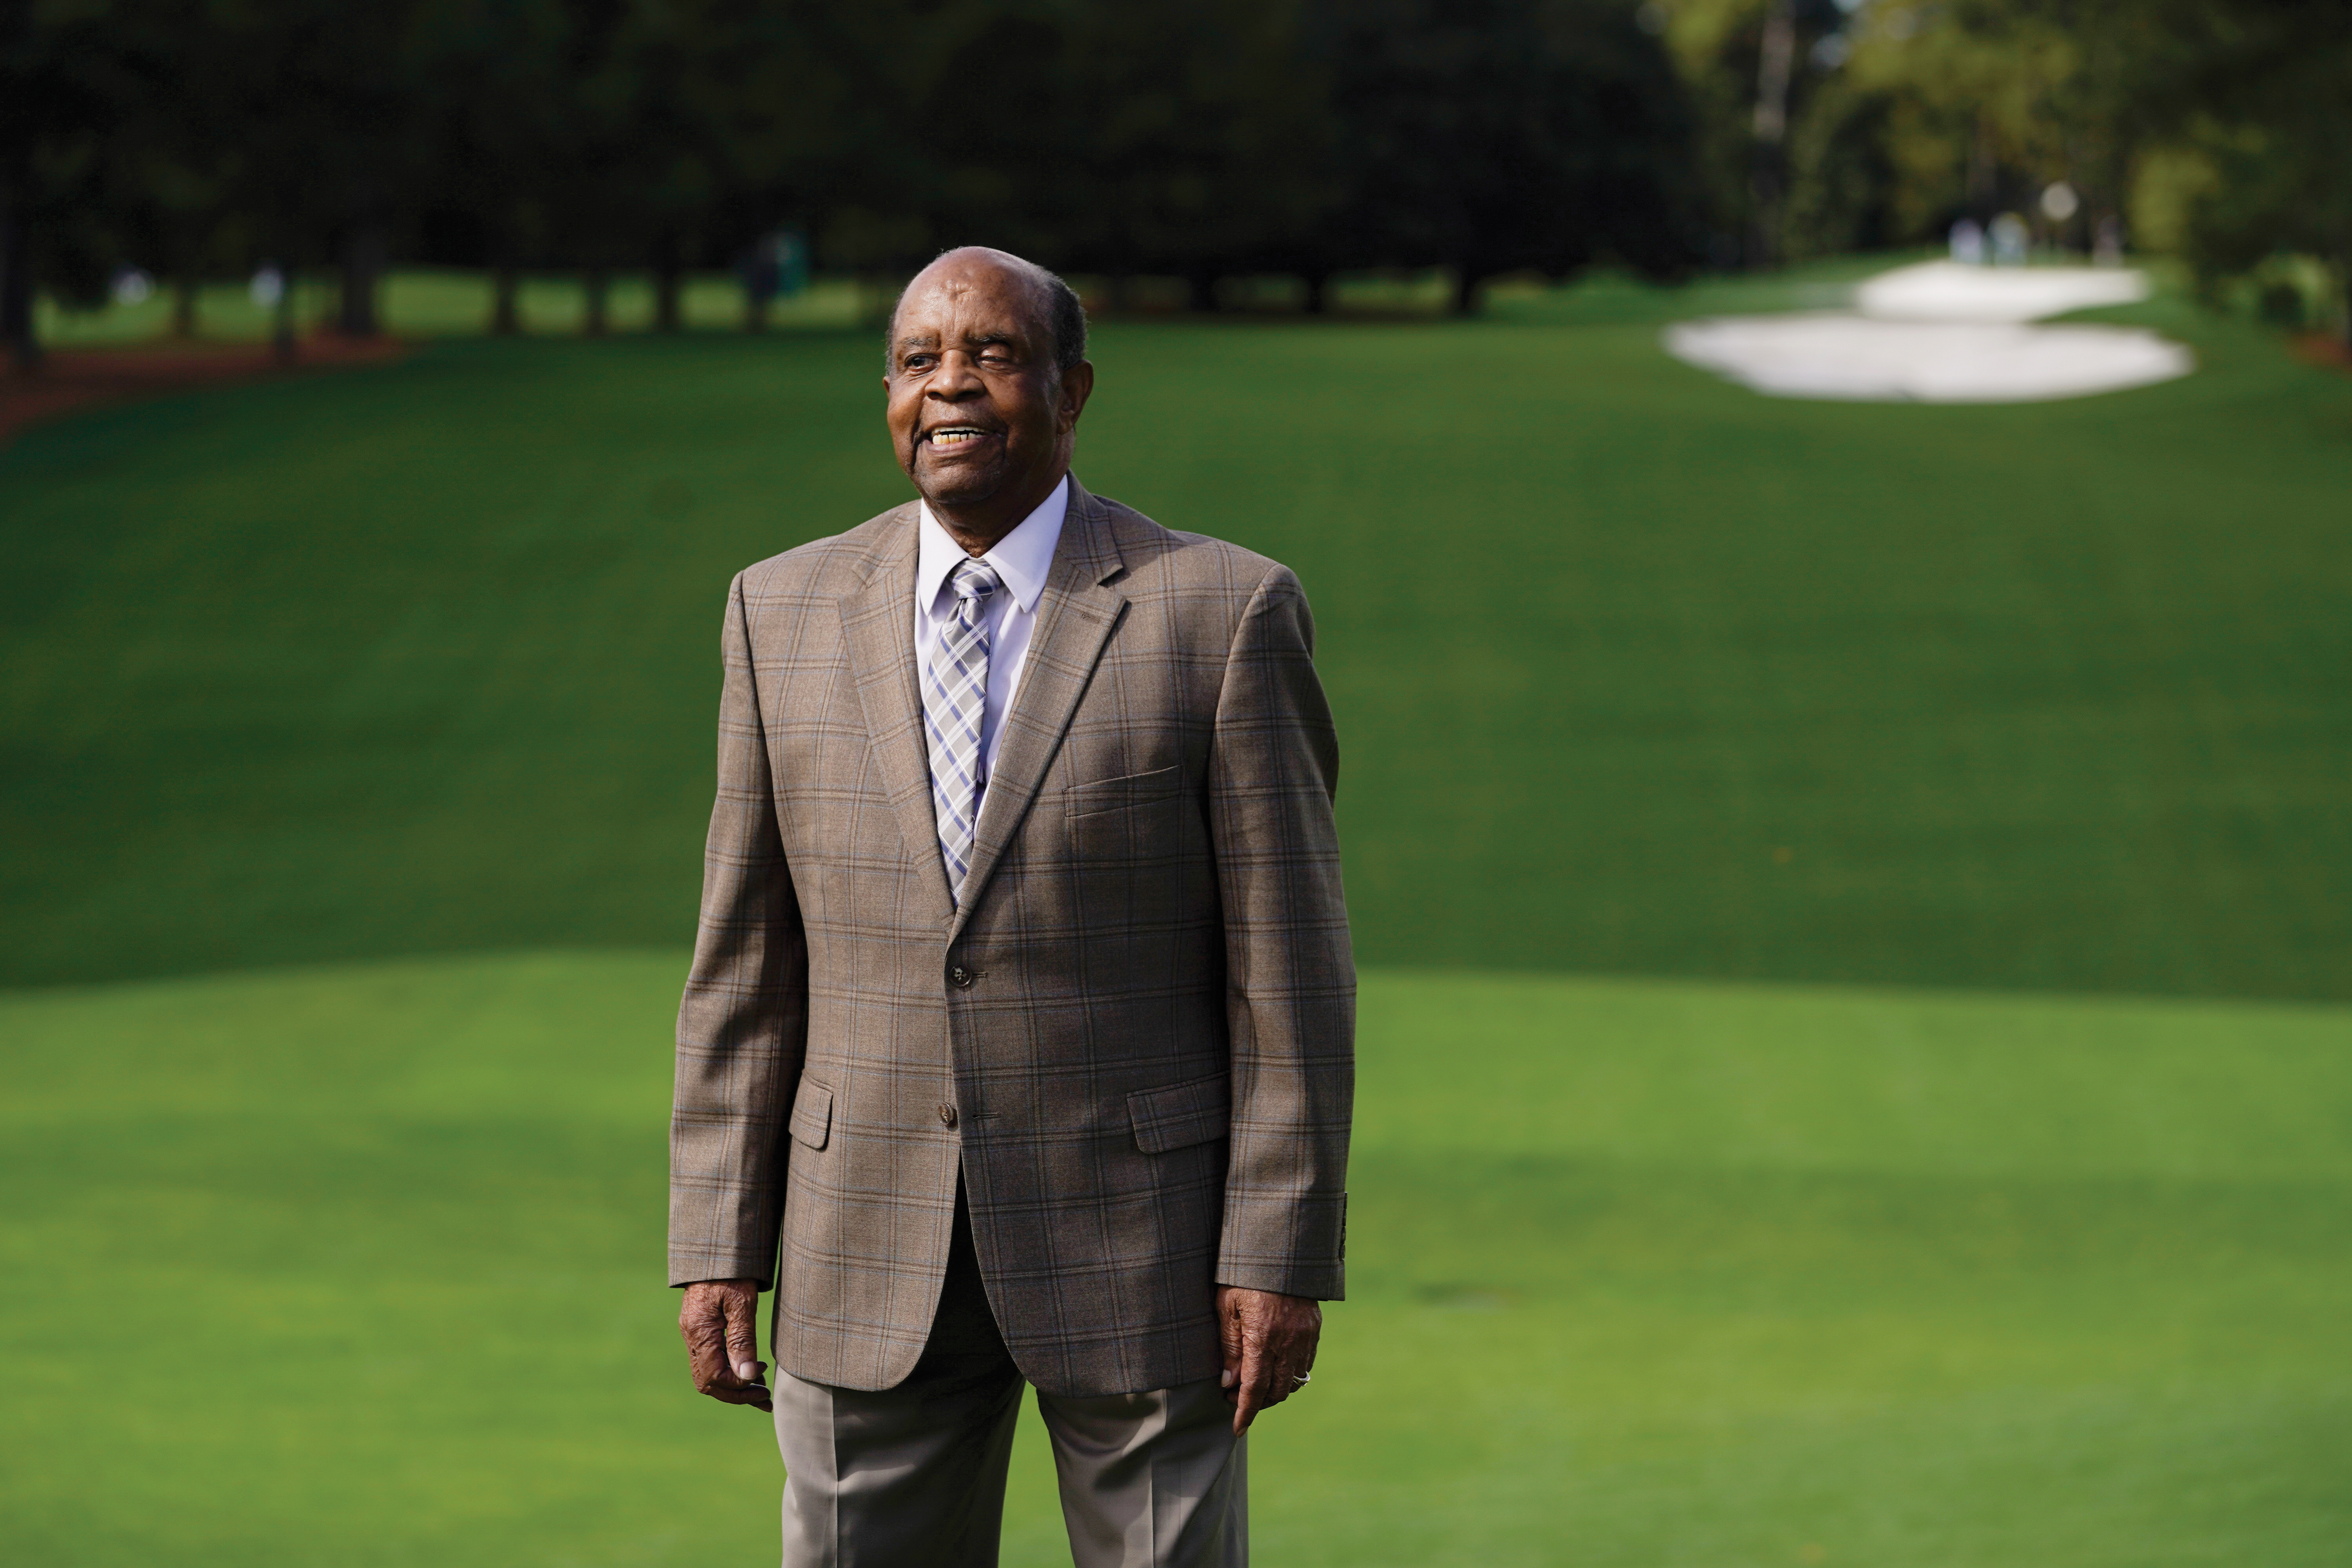 Barrier Breaking Golfer Lee Elder Being Honored By The Masters With Scholarship Richmond Free Press Serving The African American Community In Richmond Va